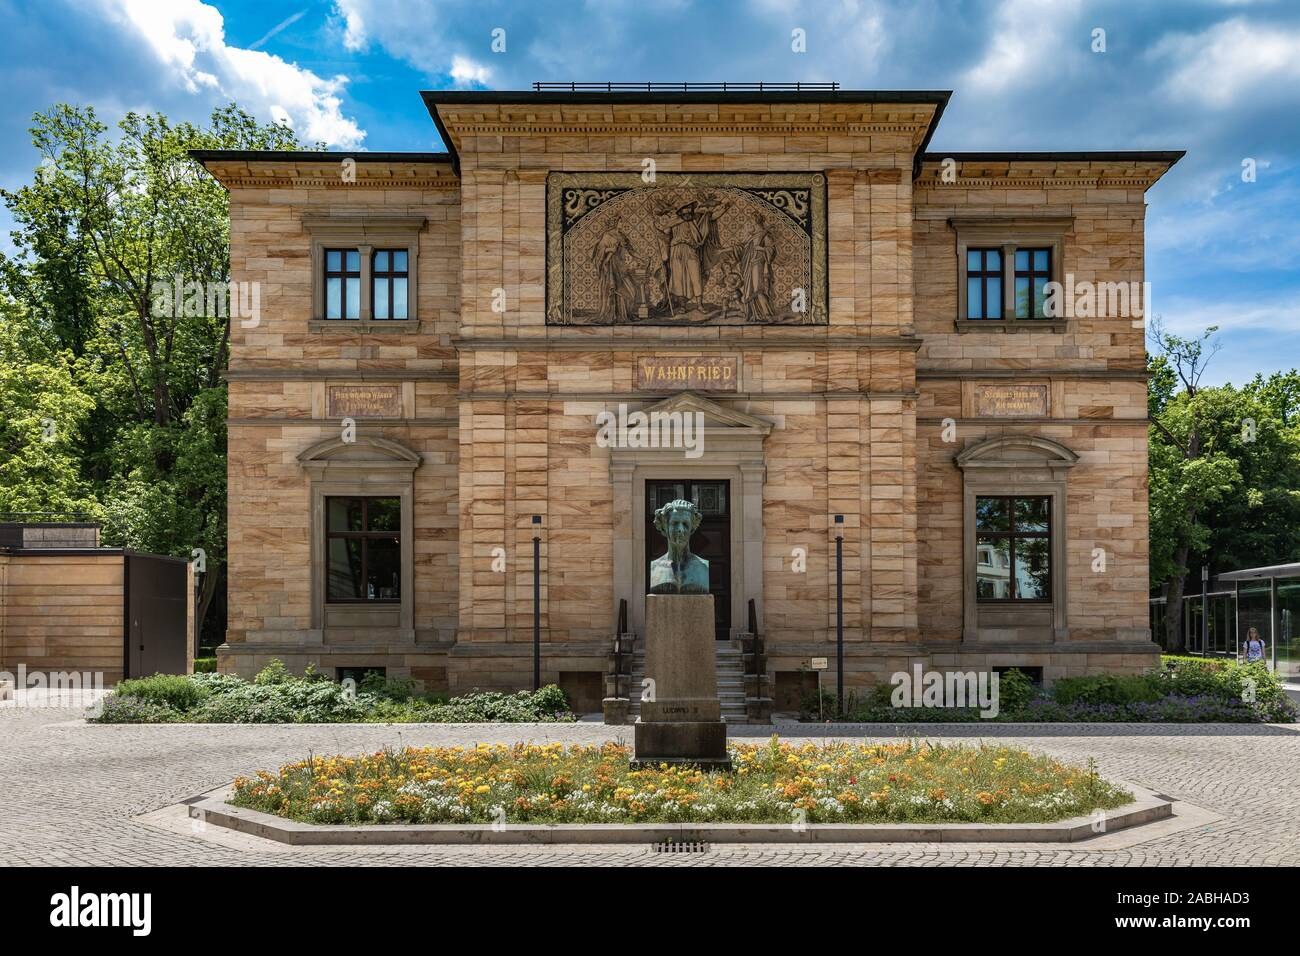 Exterior view of the Wahnfried, villa of the famous musician, composer Wilhelm Richard Wagner, with the status of Ludwig II in front, king of Bavaria, Stock Photo